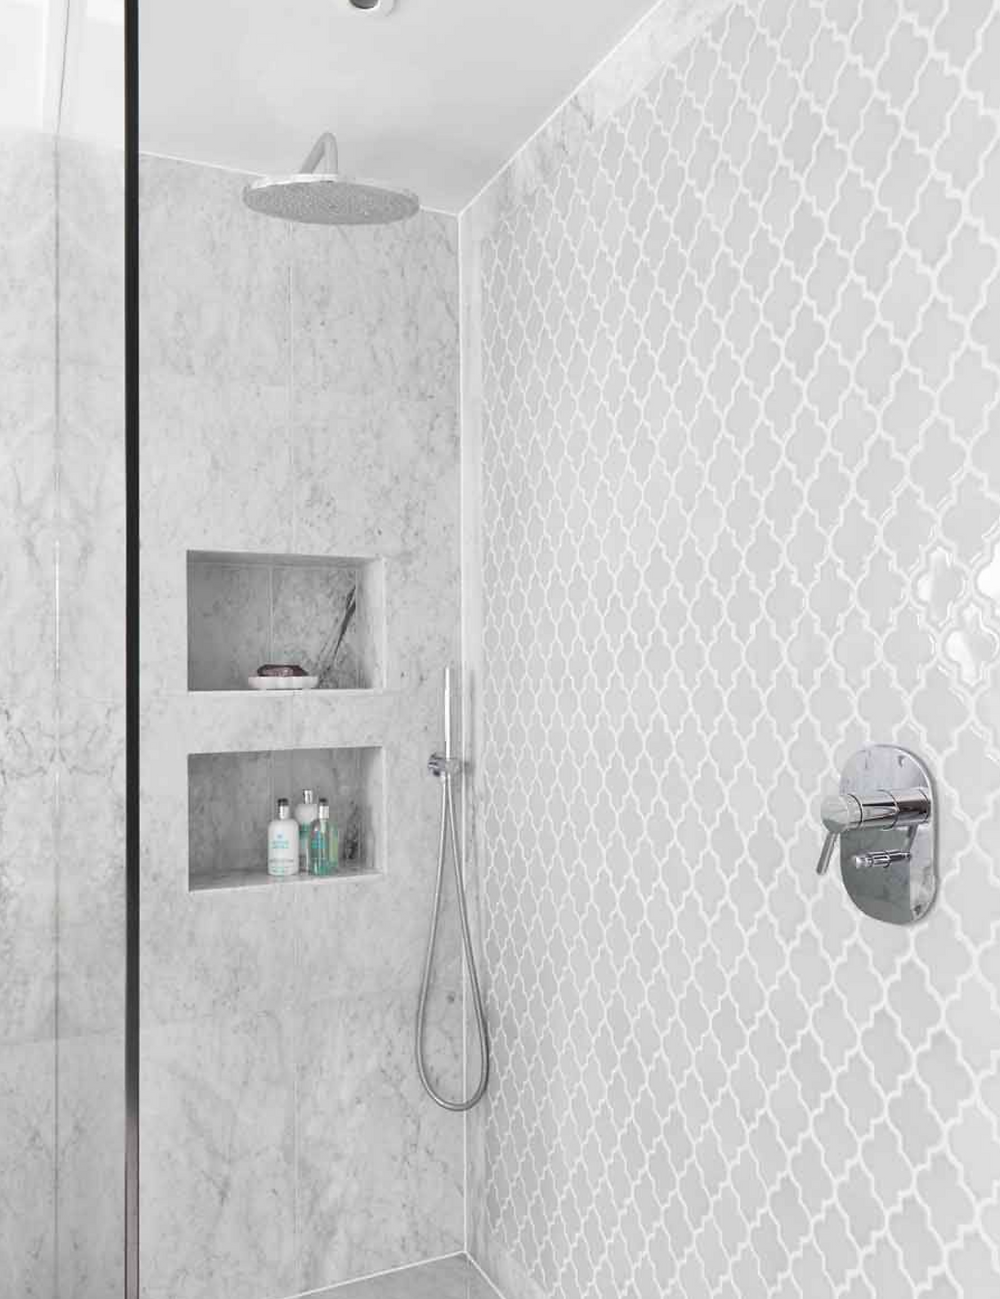 moroccan inspired tile pattern